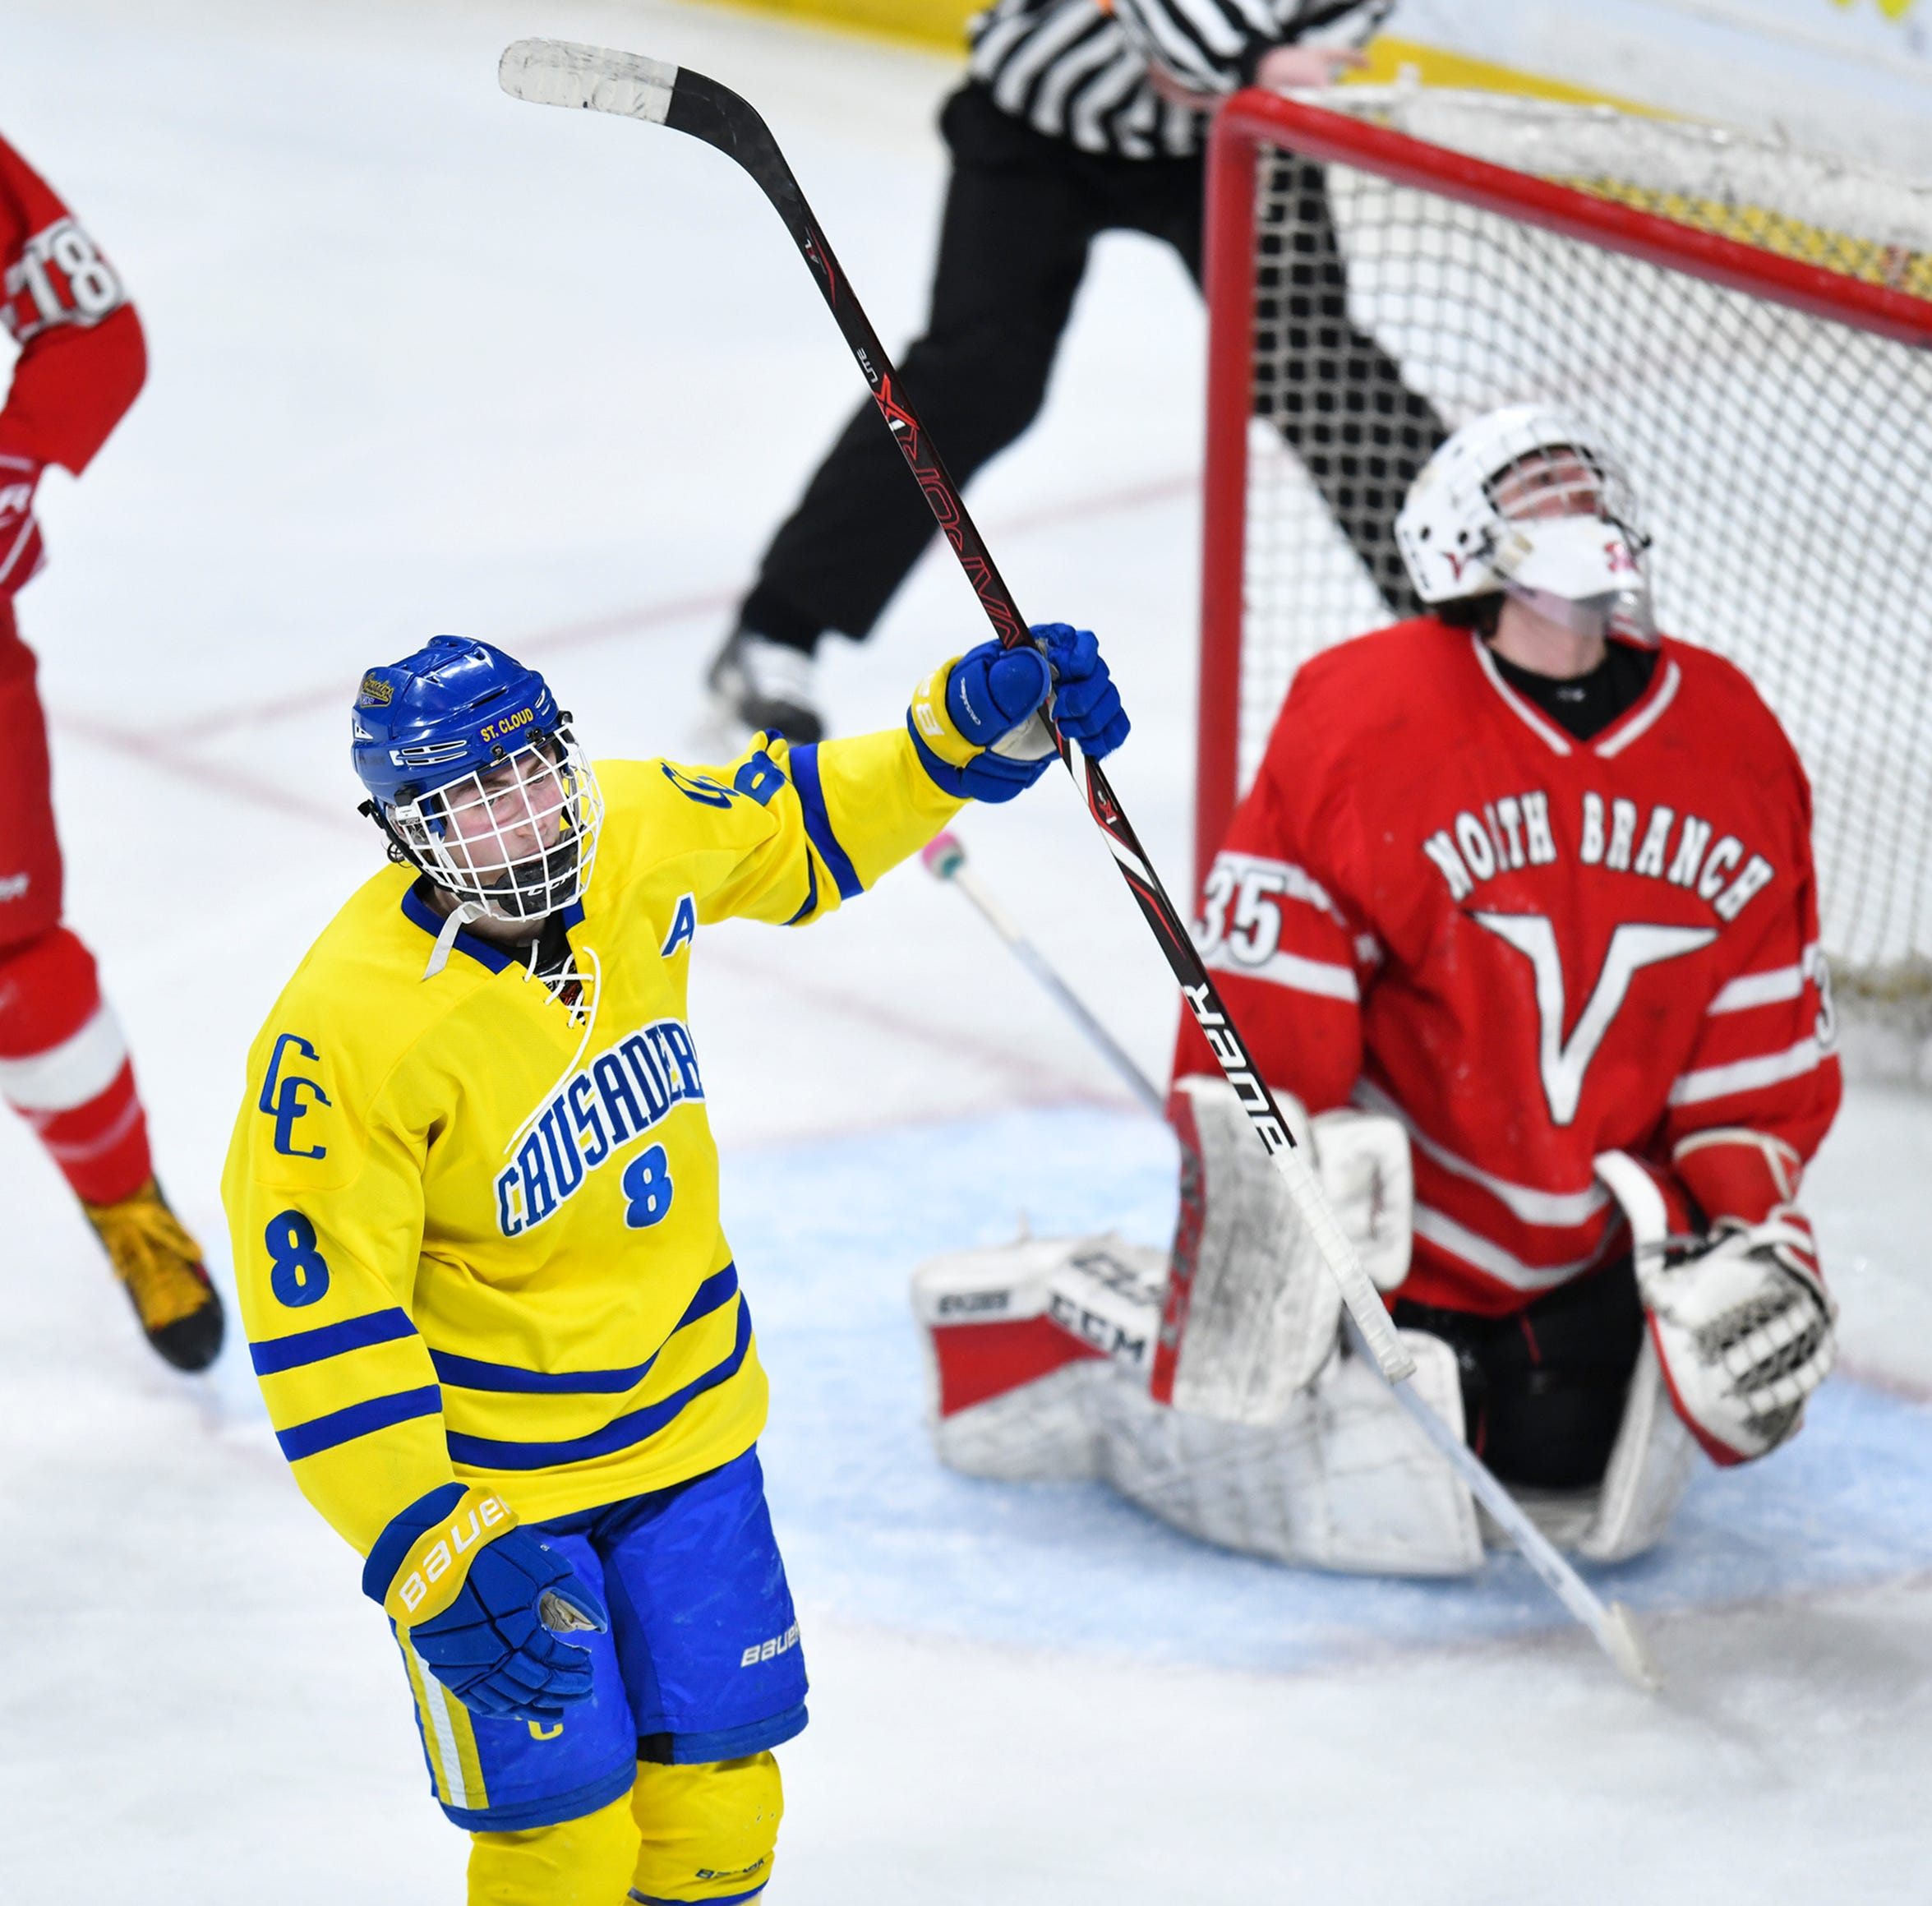 Crusaders get a second-period wakeup call, roll into semifinals